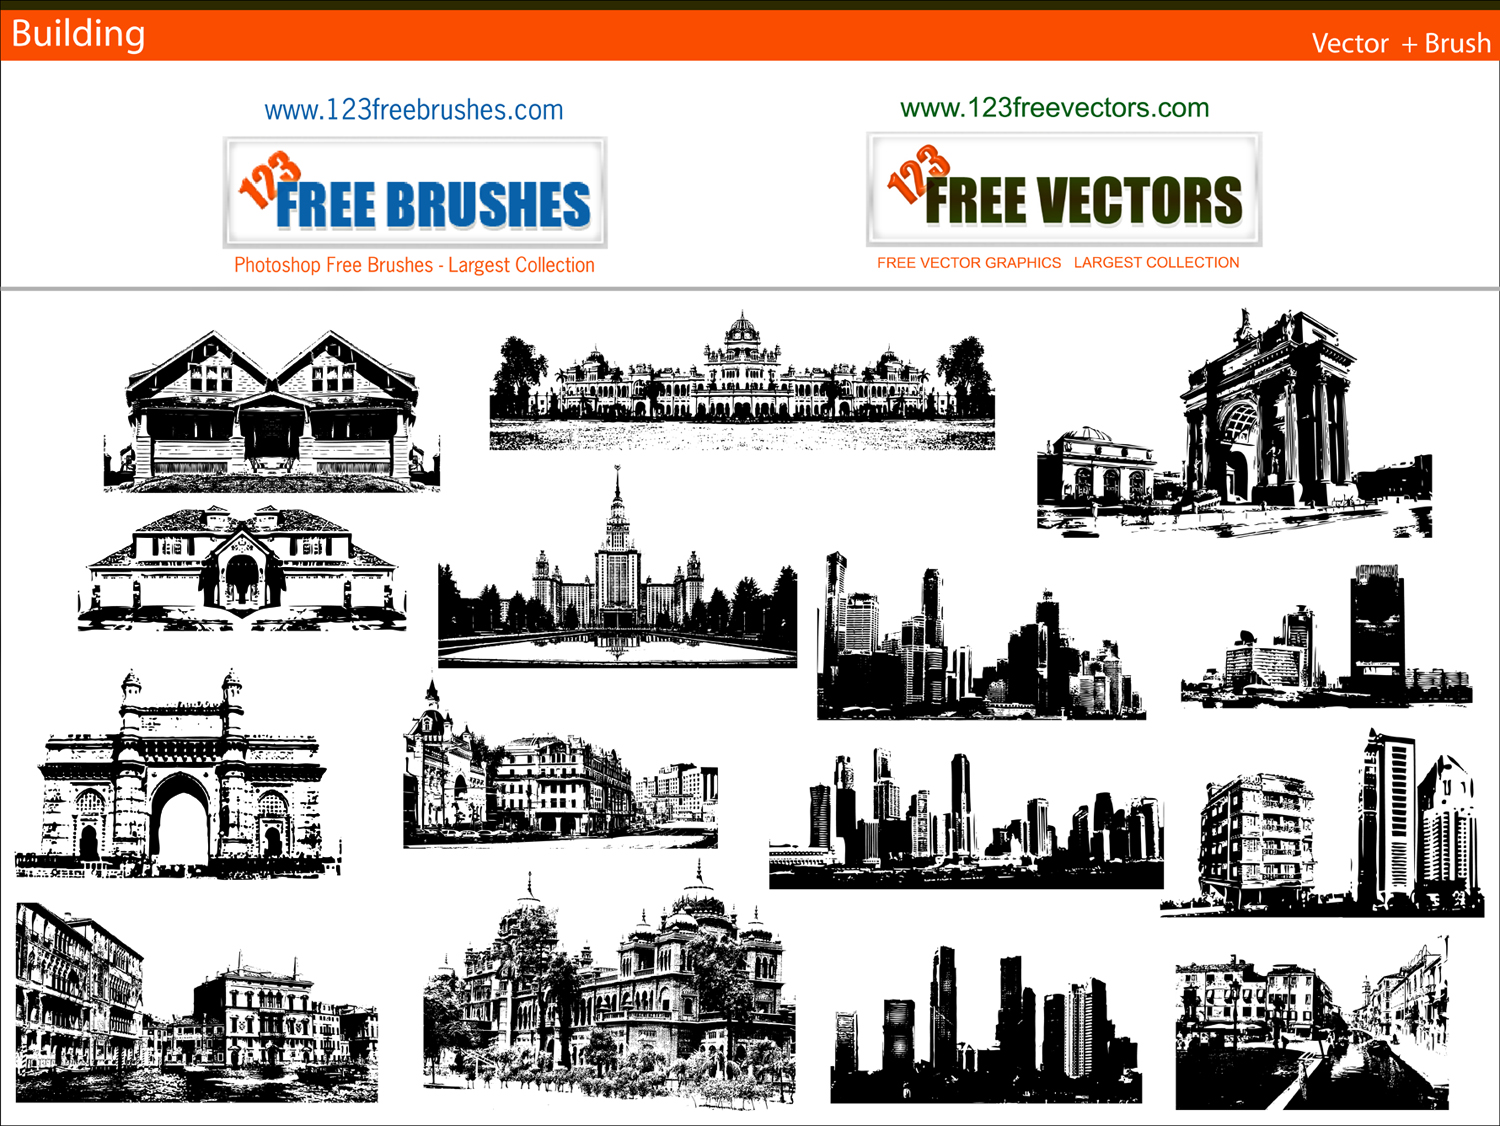 13 Construction Vector Designs Free Download Images